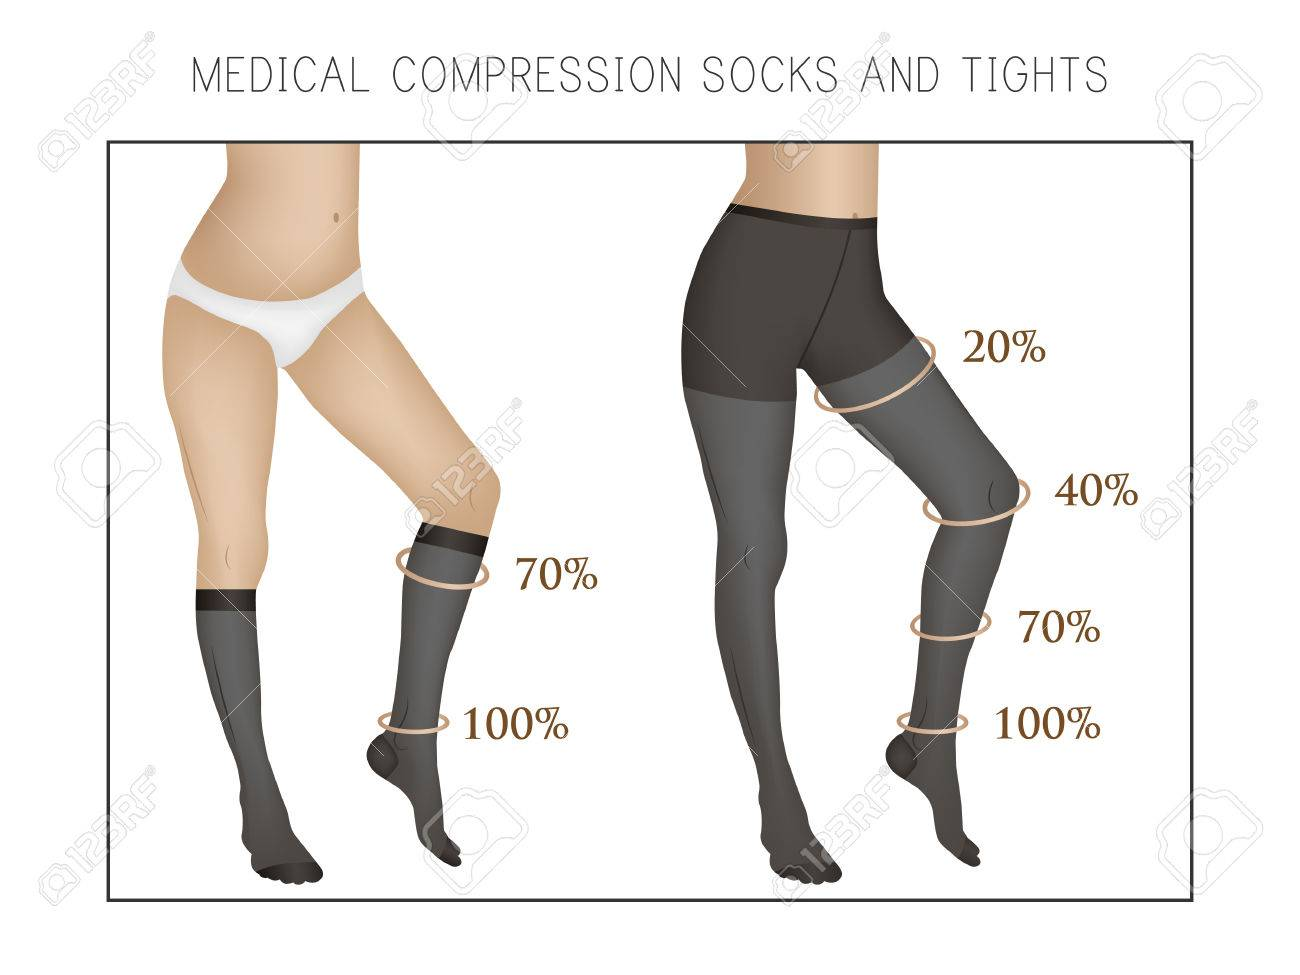 e759d2d0e9 medical compression socks and tights. Slender and beautiful female legs. Varicose  veins. Stock